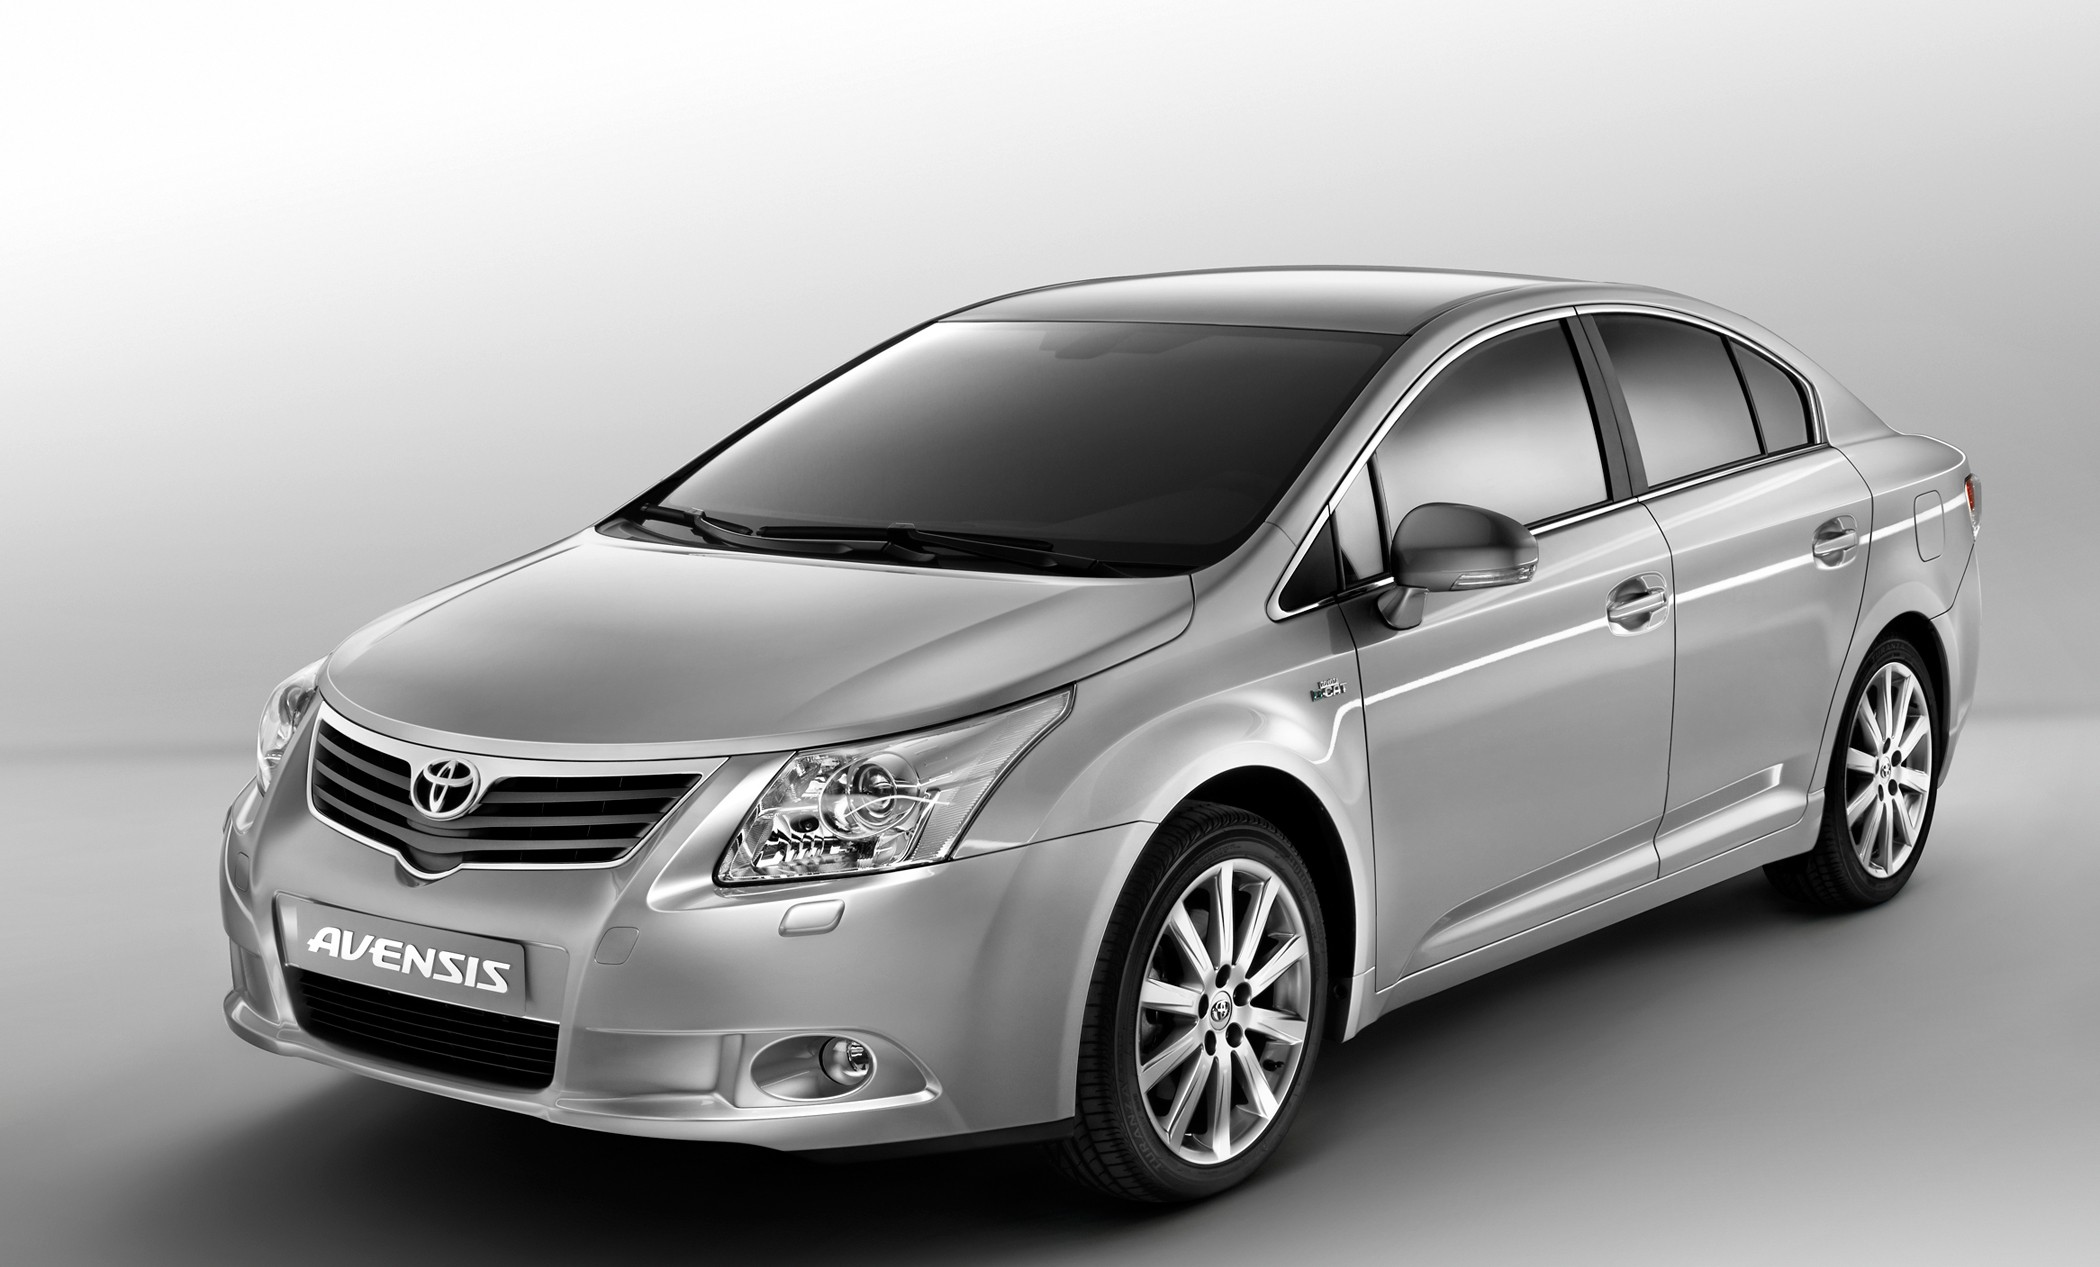 Toyota presents the new Avensis